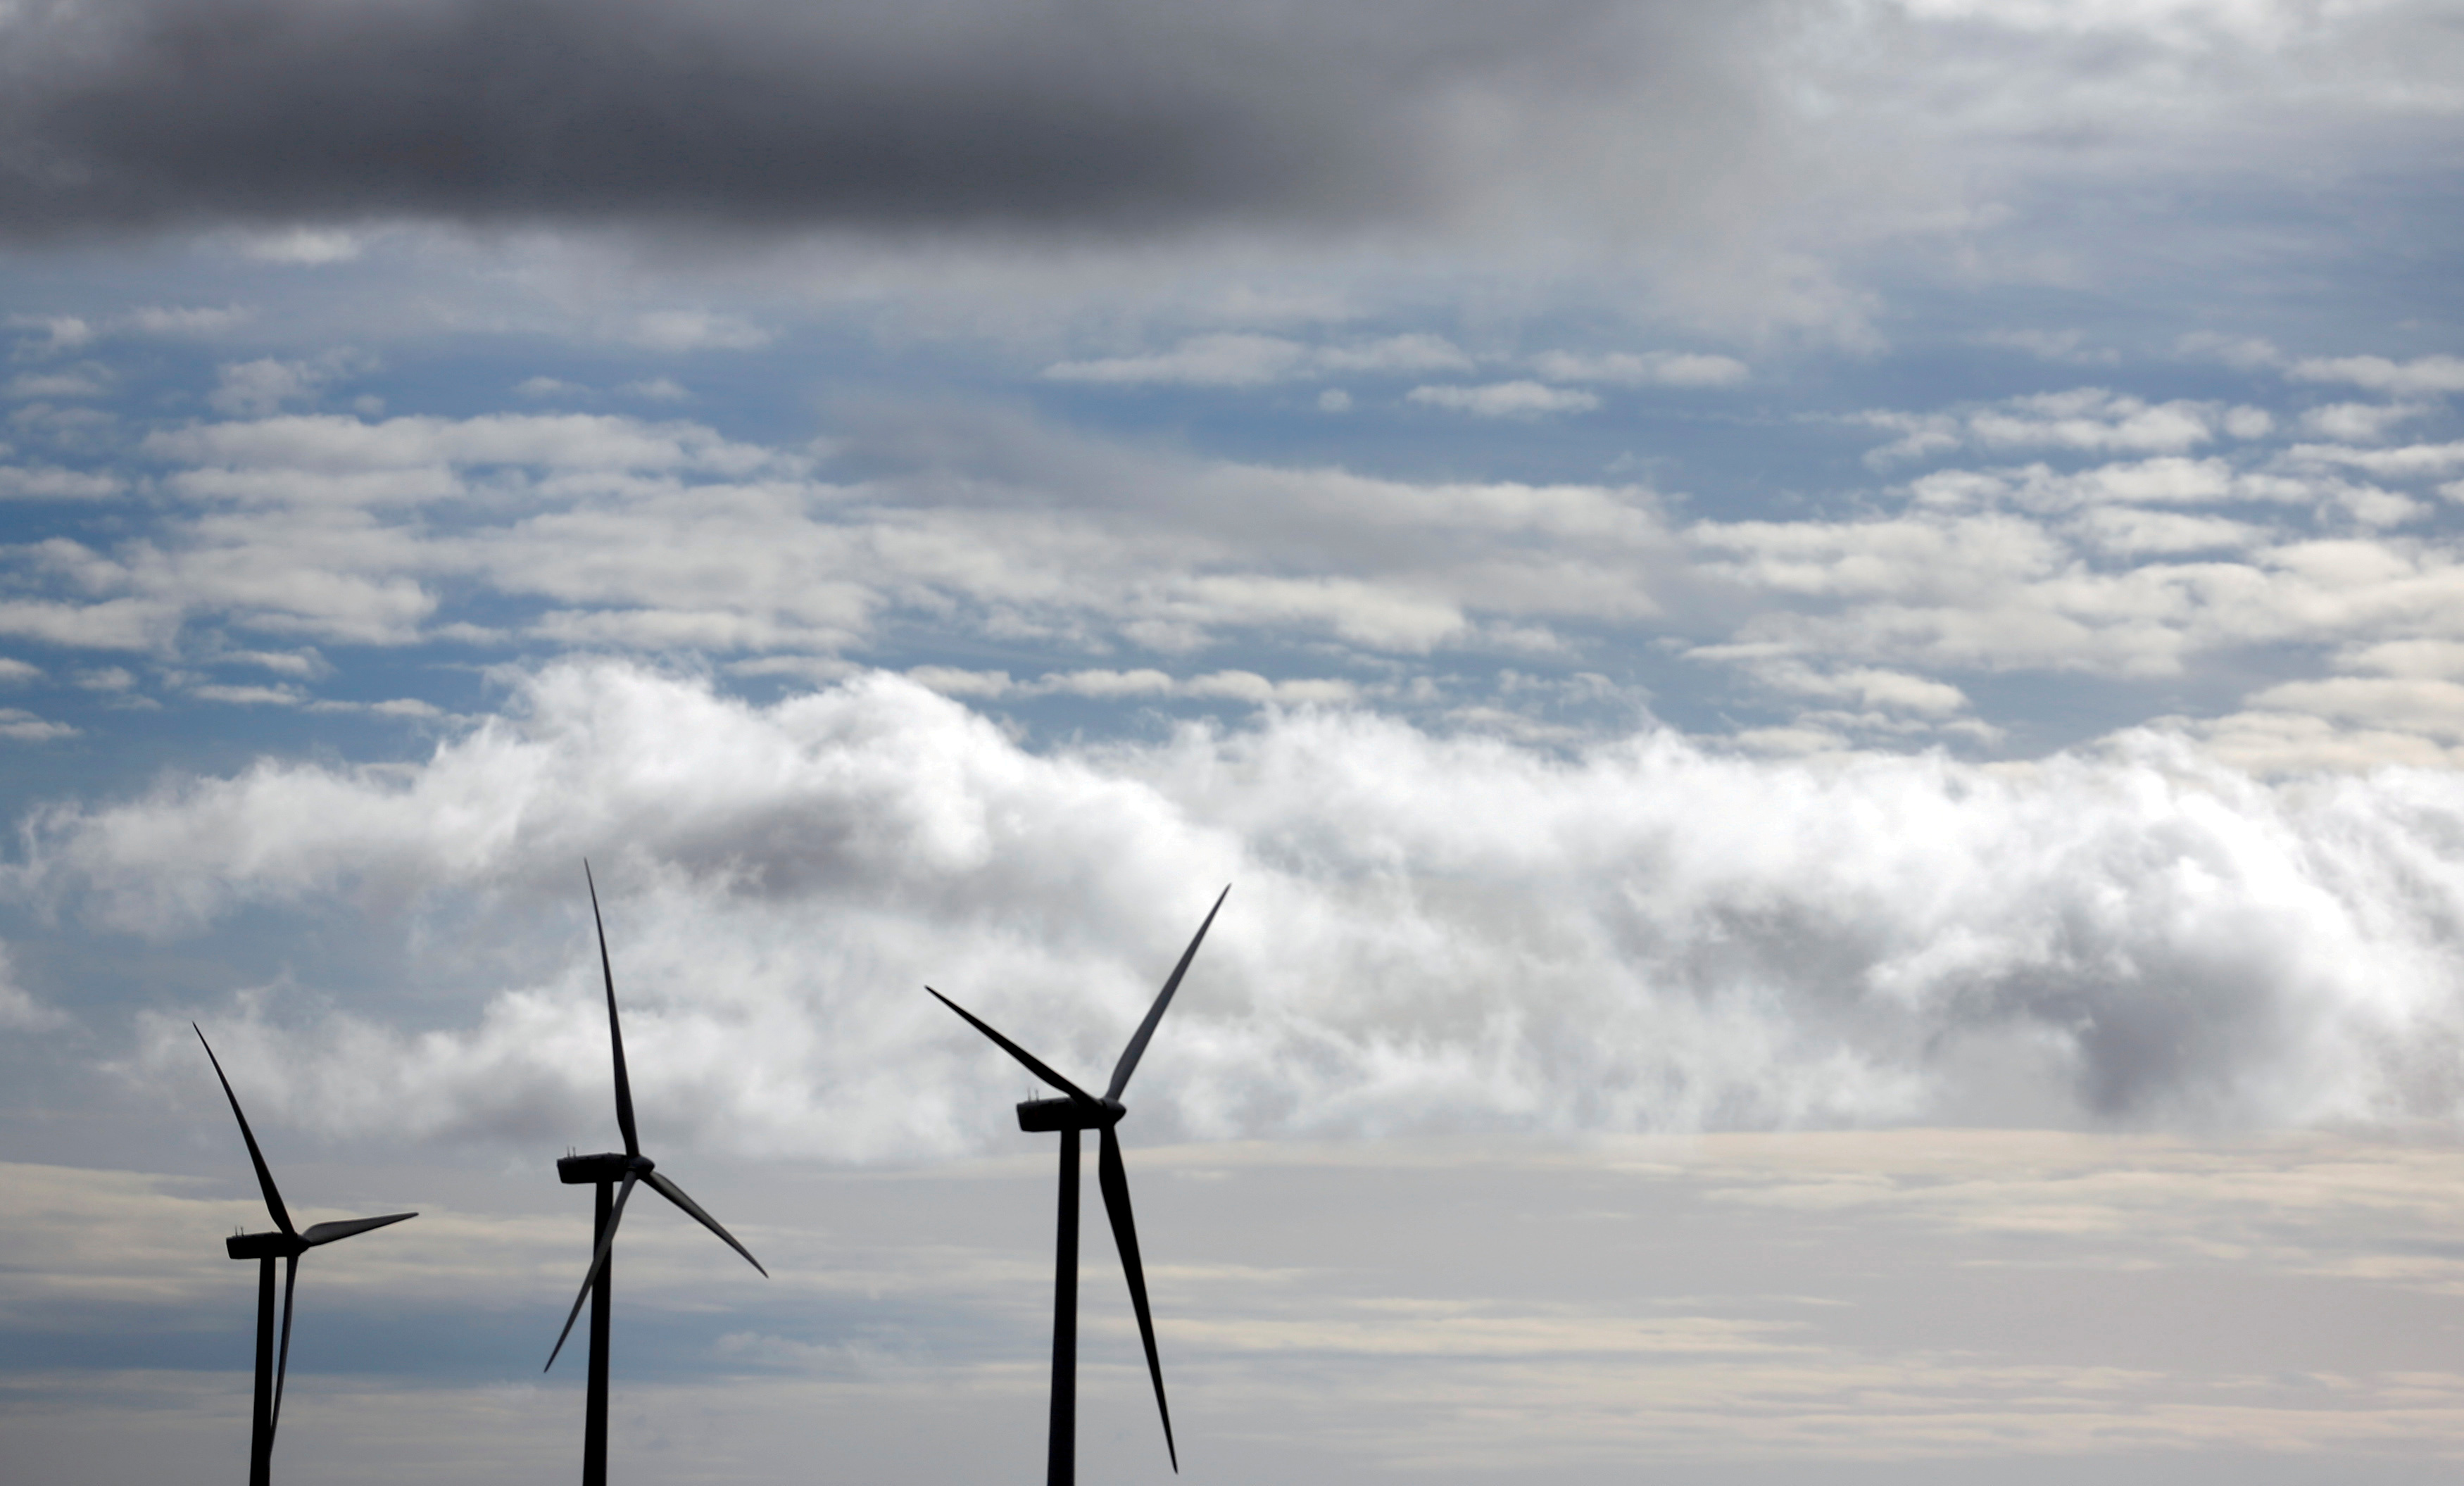 FILE PHOTO: Iberdrola's power generating wind turbines are seen against cloudy sky at Moranchon wind farm in central Spain December 17, 2012.   REUTERS/Sergio Perez/File Photo